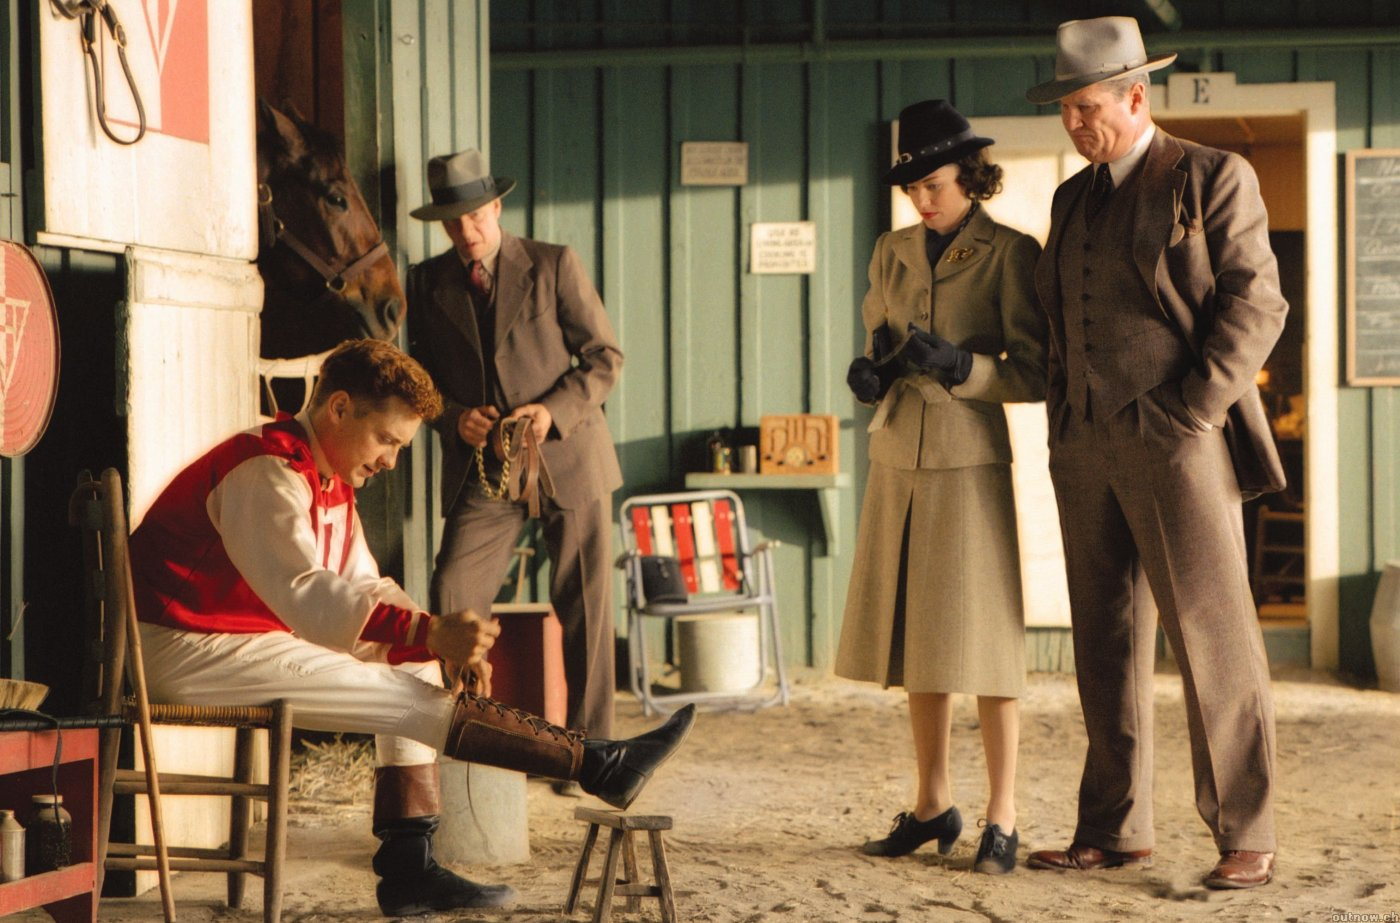 The movie seabiscuit